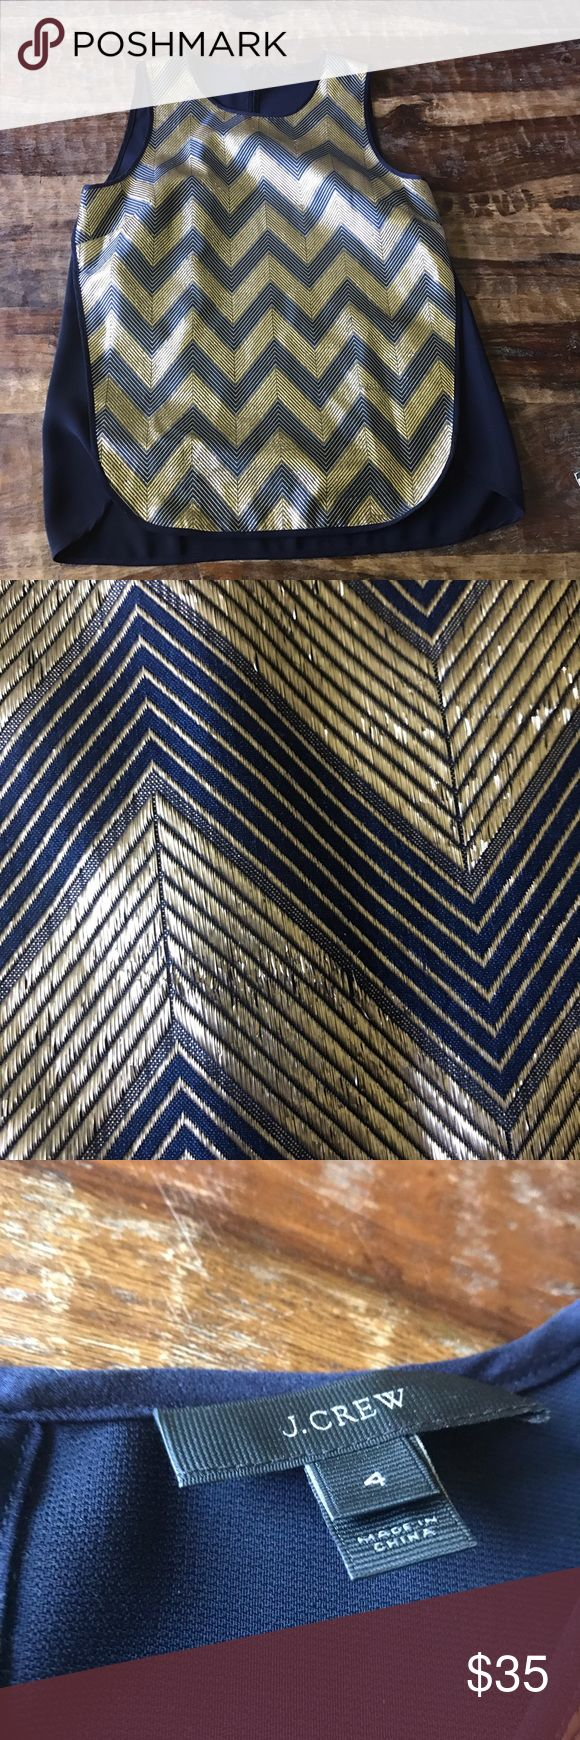 """J. Crew Gold Chevron Top Beautiful gilded gold Chevron tank top. In excellent condition with minor signs of wear. Color is navy blue and Metallic gold. Chest is 18"""" across laying flat and length is 25"""" J. Crew Tops Tank Tops"""